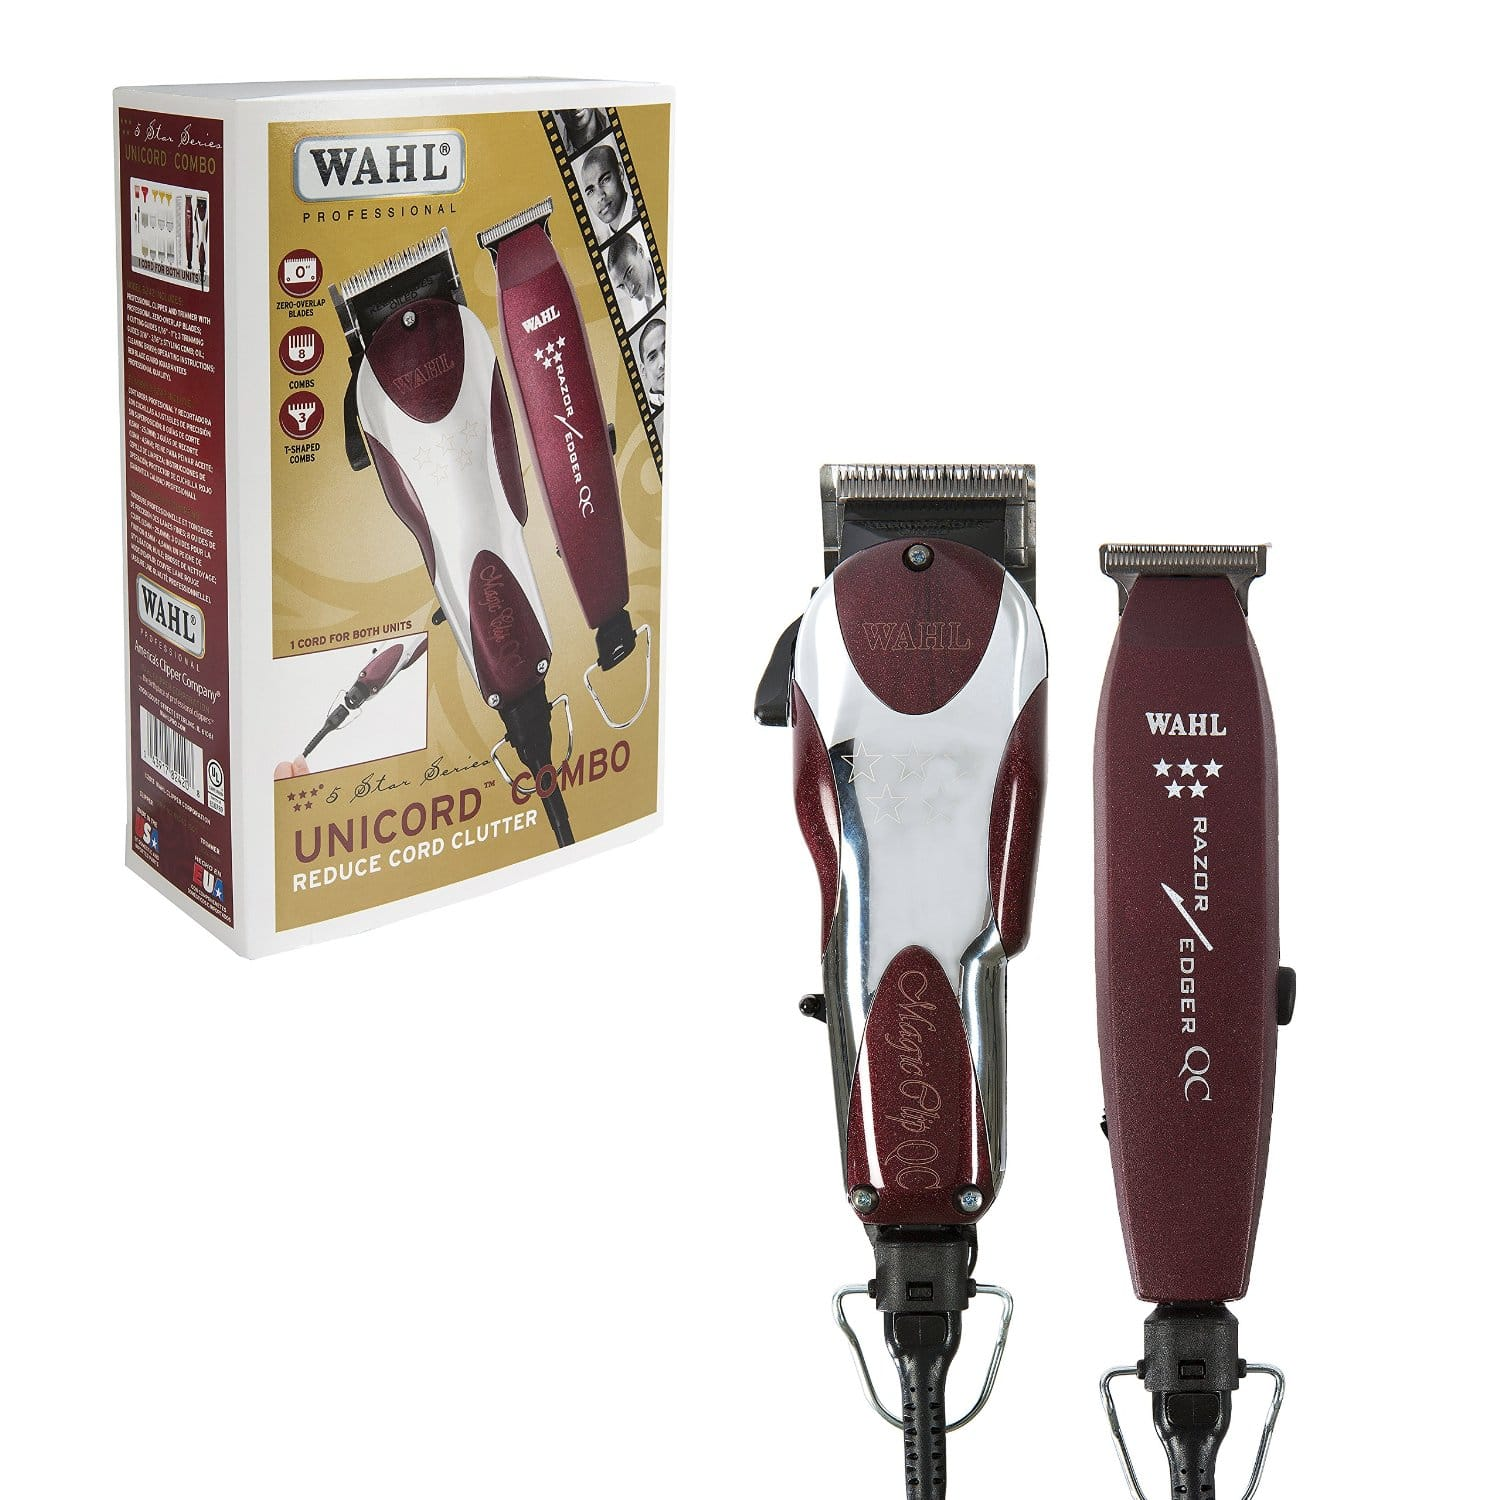 Wahl 5 Star Unicord Combo 8242 Barber Depot Clipper Classic Series 1 Usa